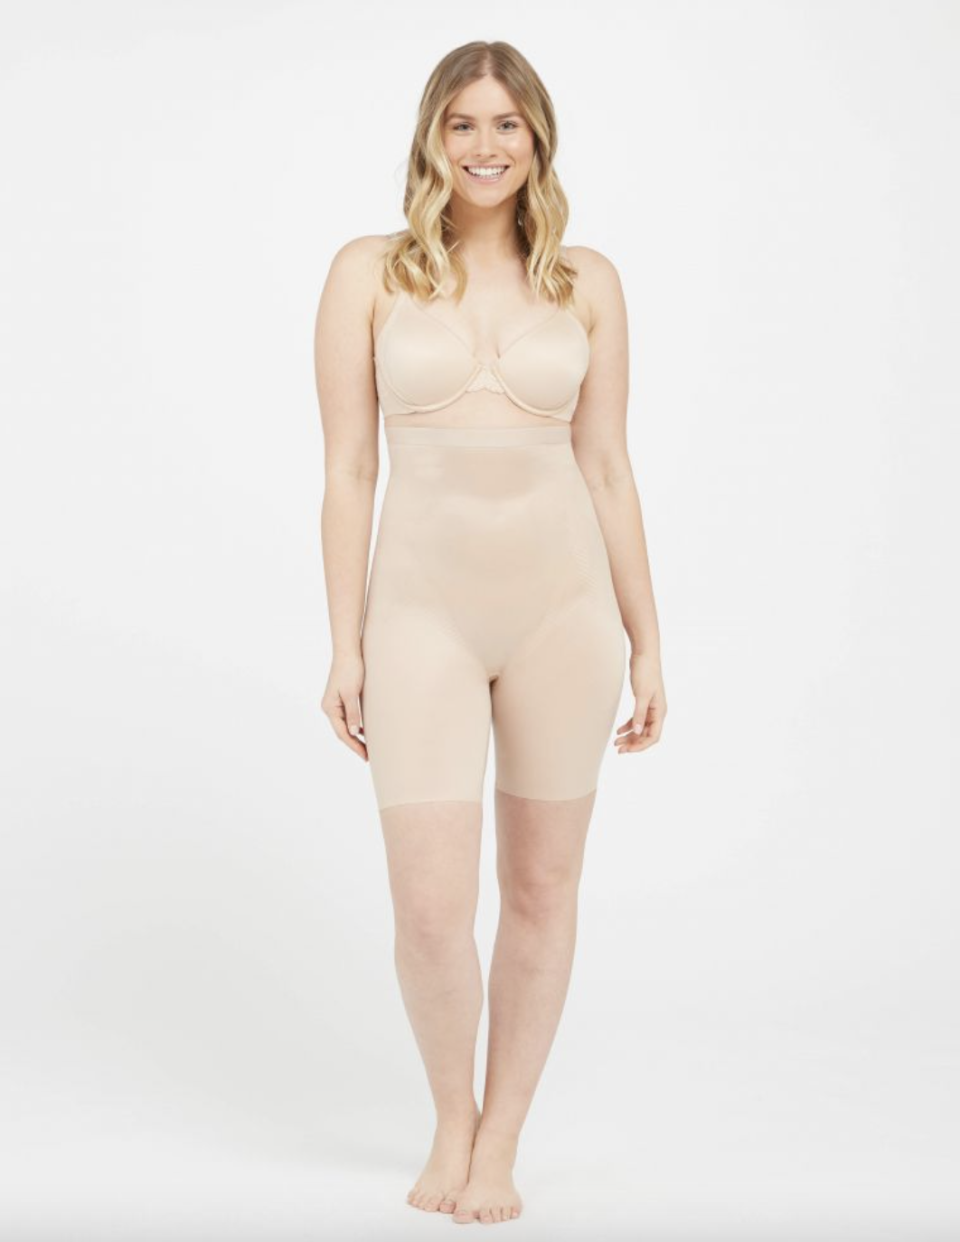 blonde model wearing Spanx Thinstincts 2.0 High-Waisted Mid-Thigh Short in Champagne Beige and nude bra(Photo via Spanx)